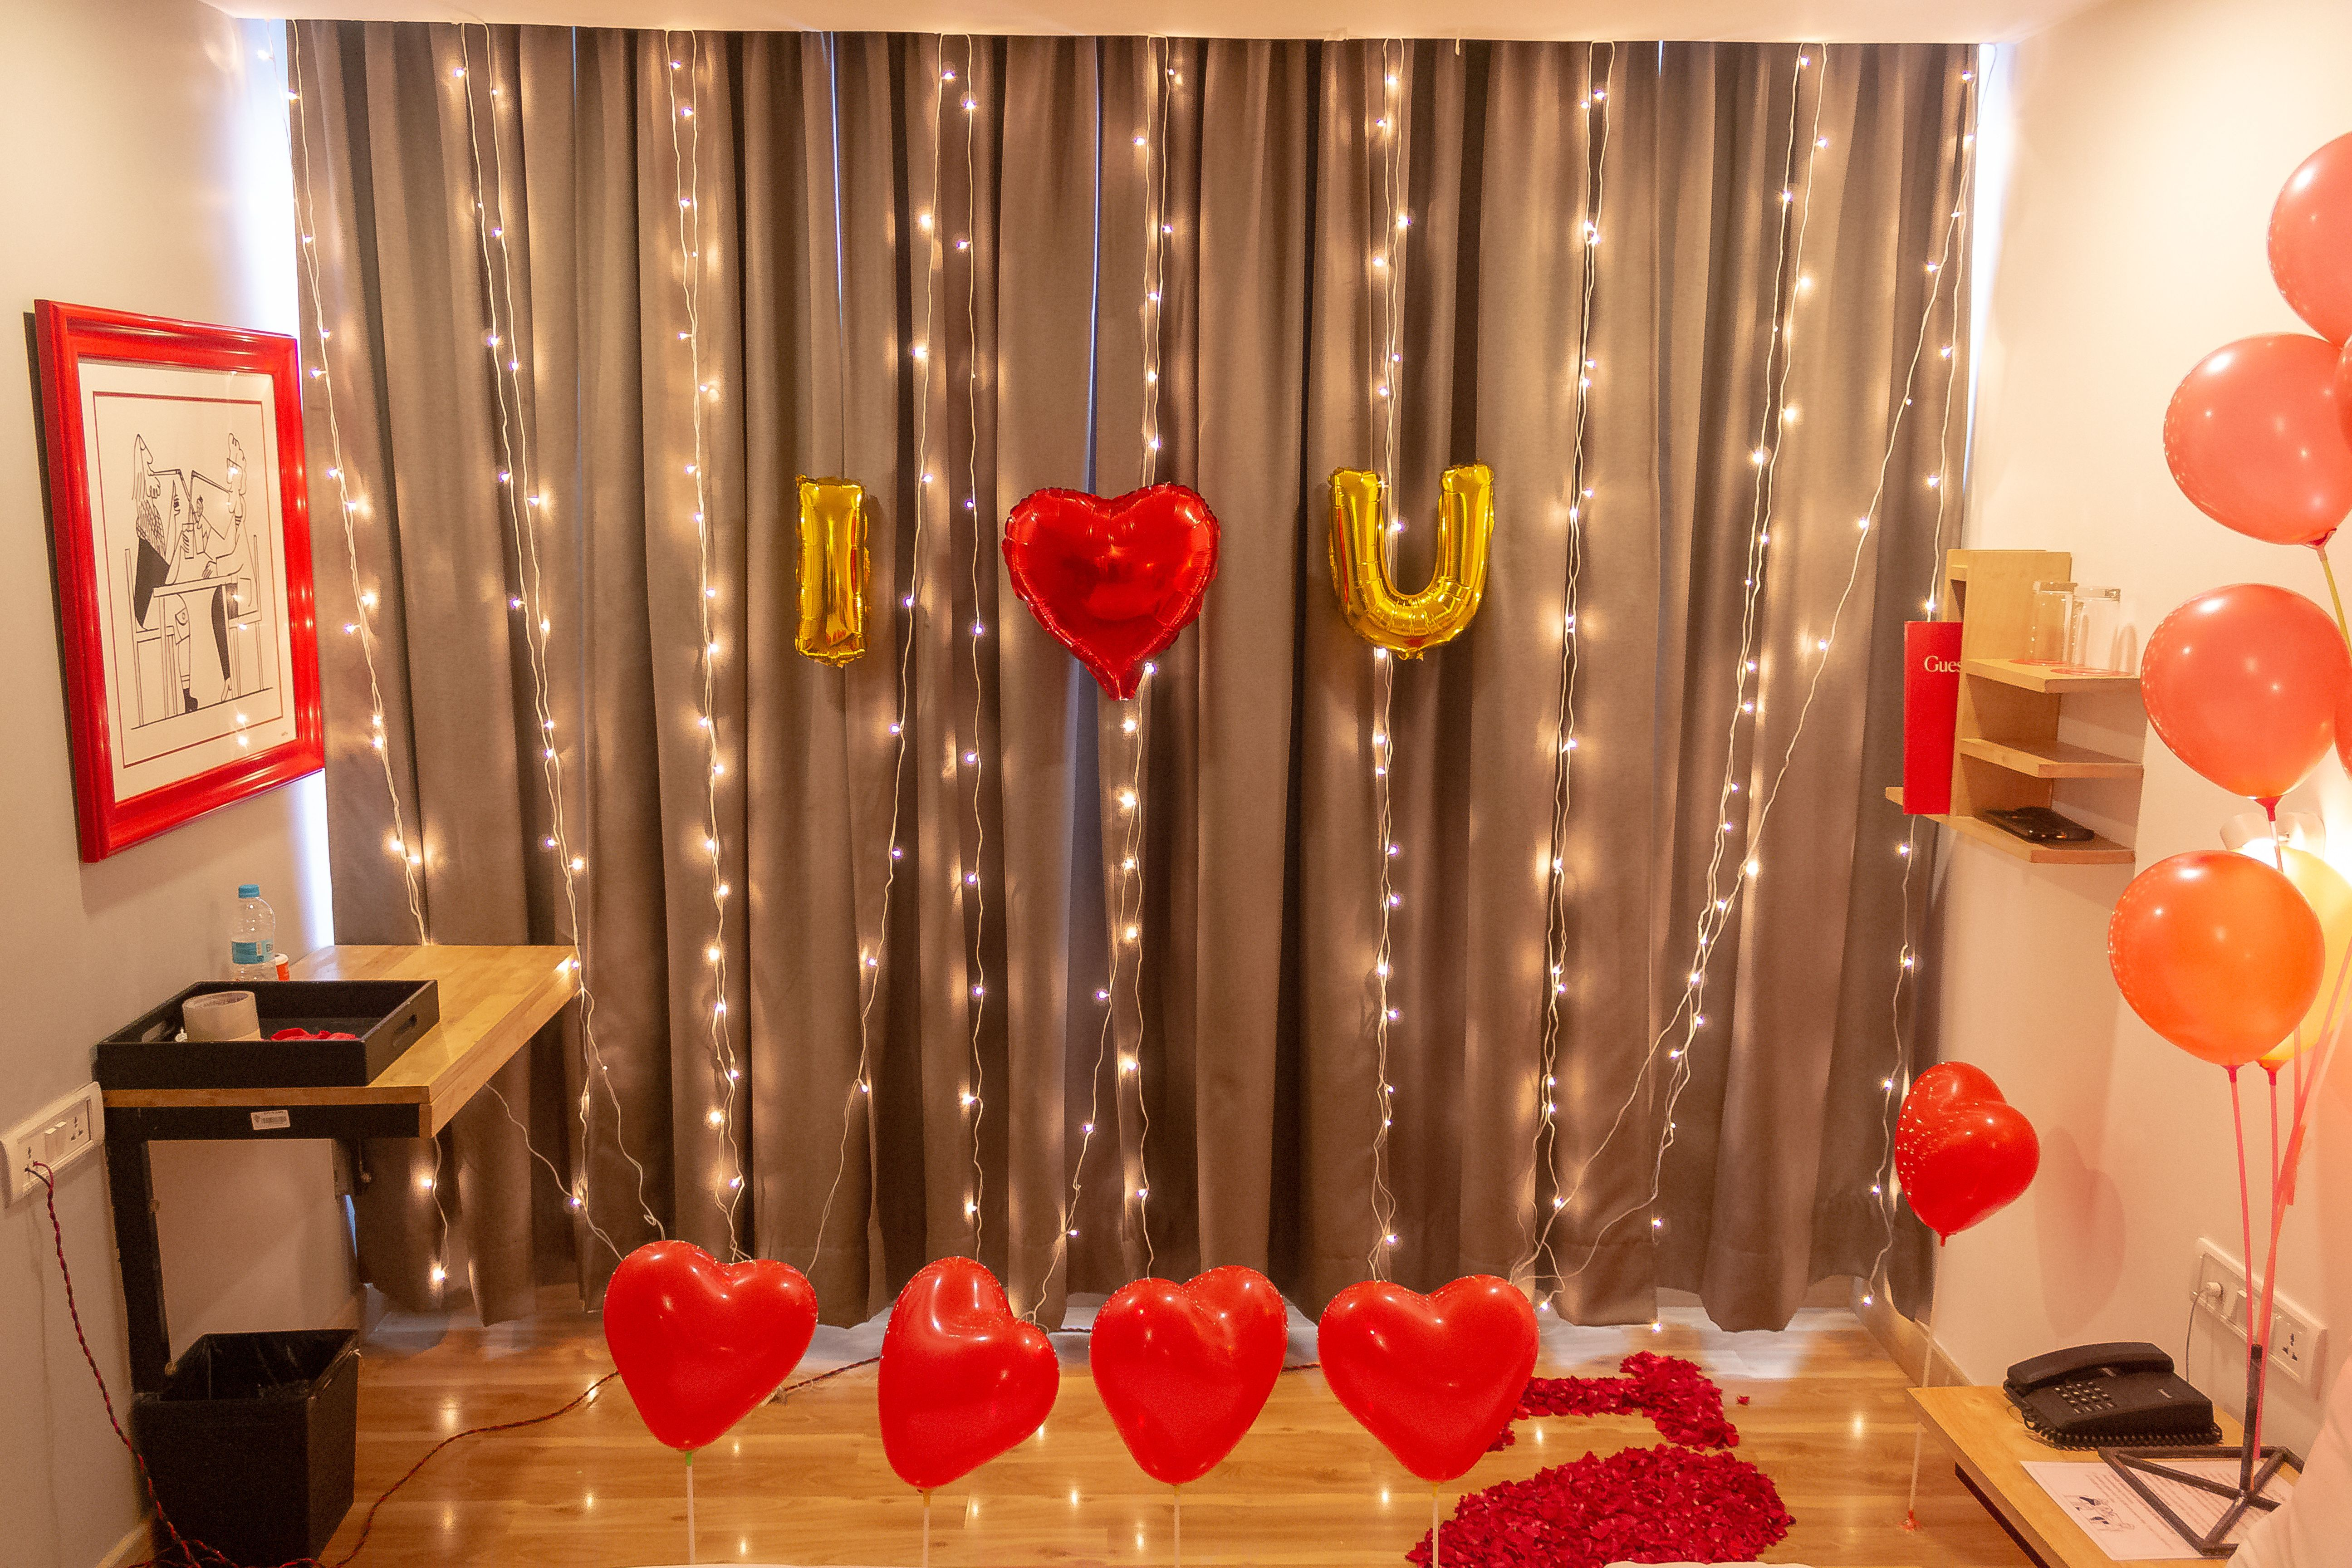 Show Your Love In 2021 Wedding Anniversary Surprises Birthday Room Decorations Birthday Room Surprise